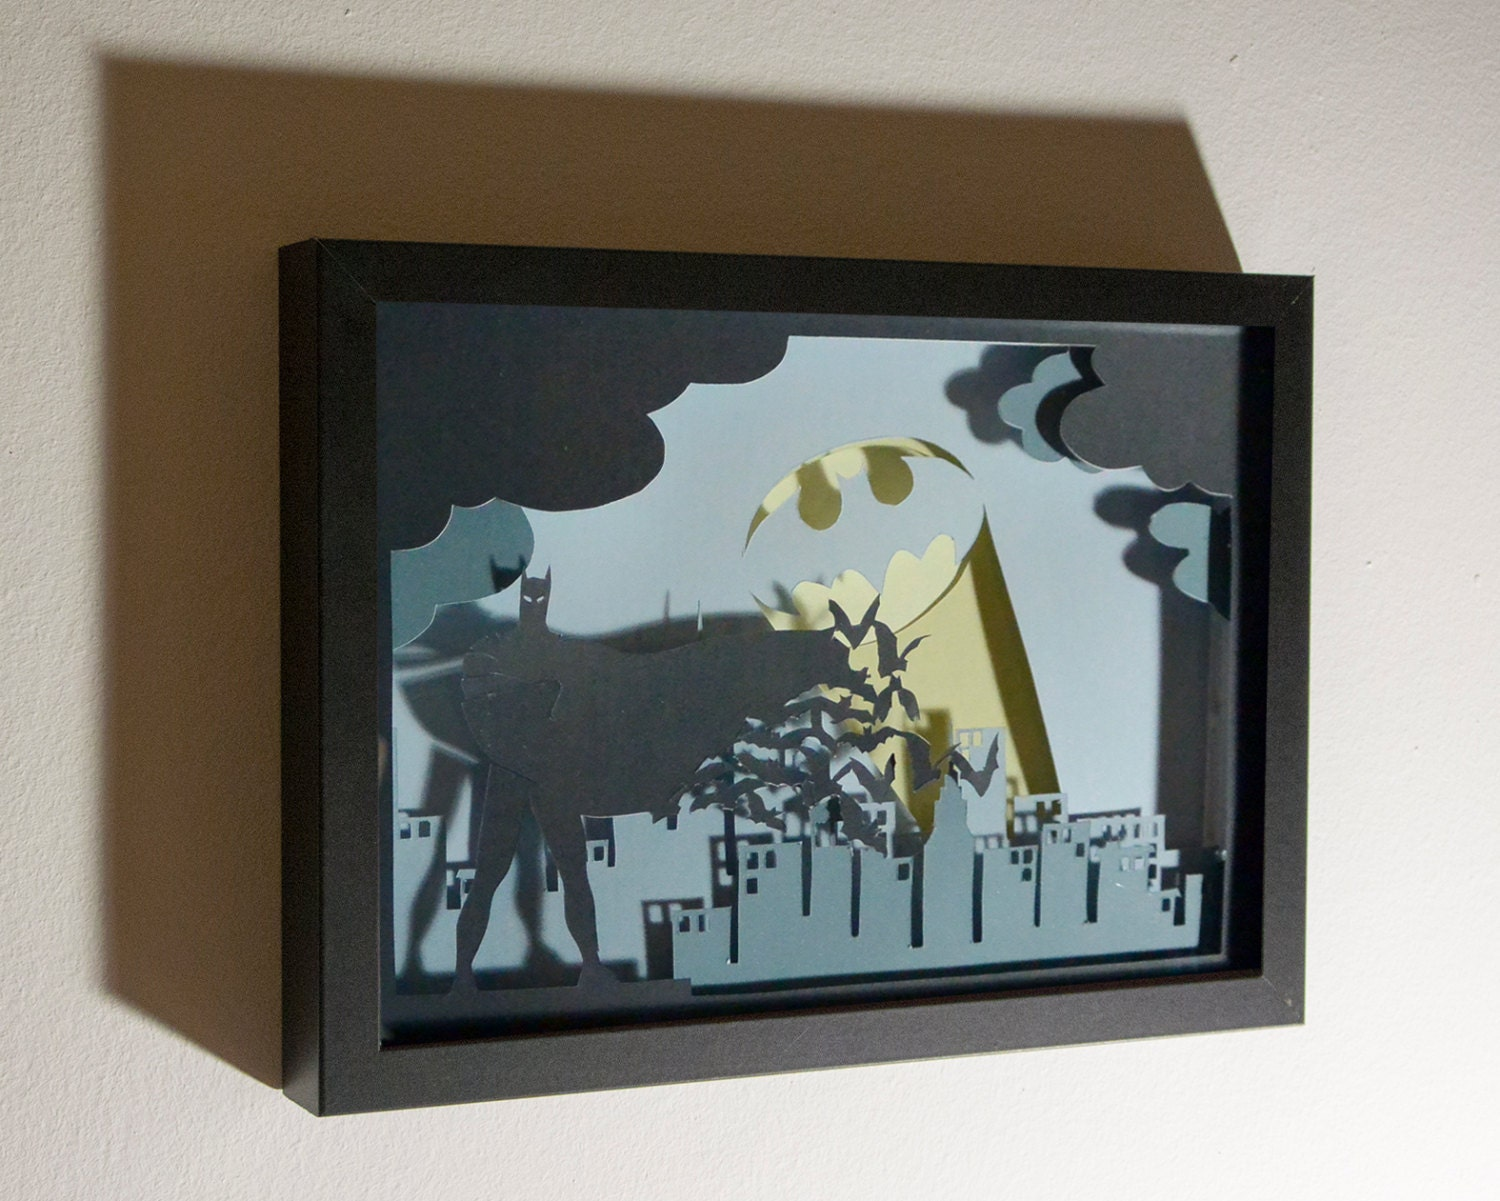 Batman framed hand paper cut special wall decor unique gift zoom amipublicfo Image collections